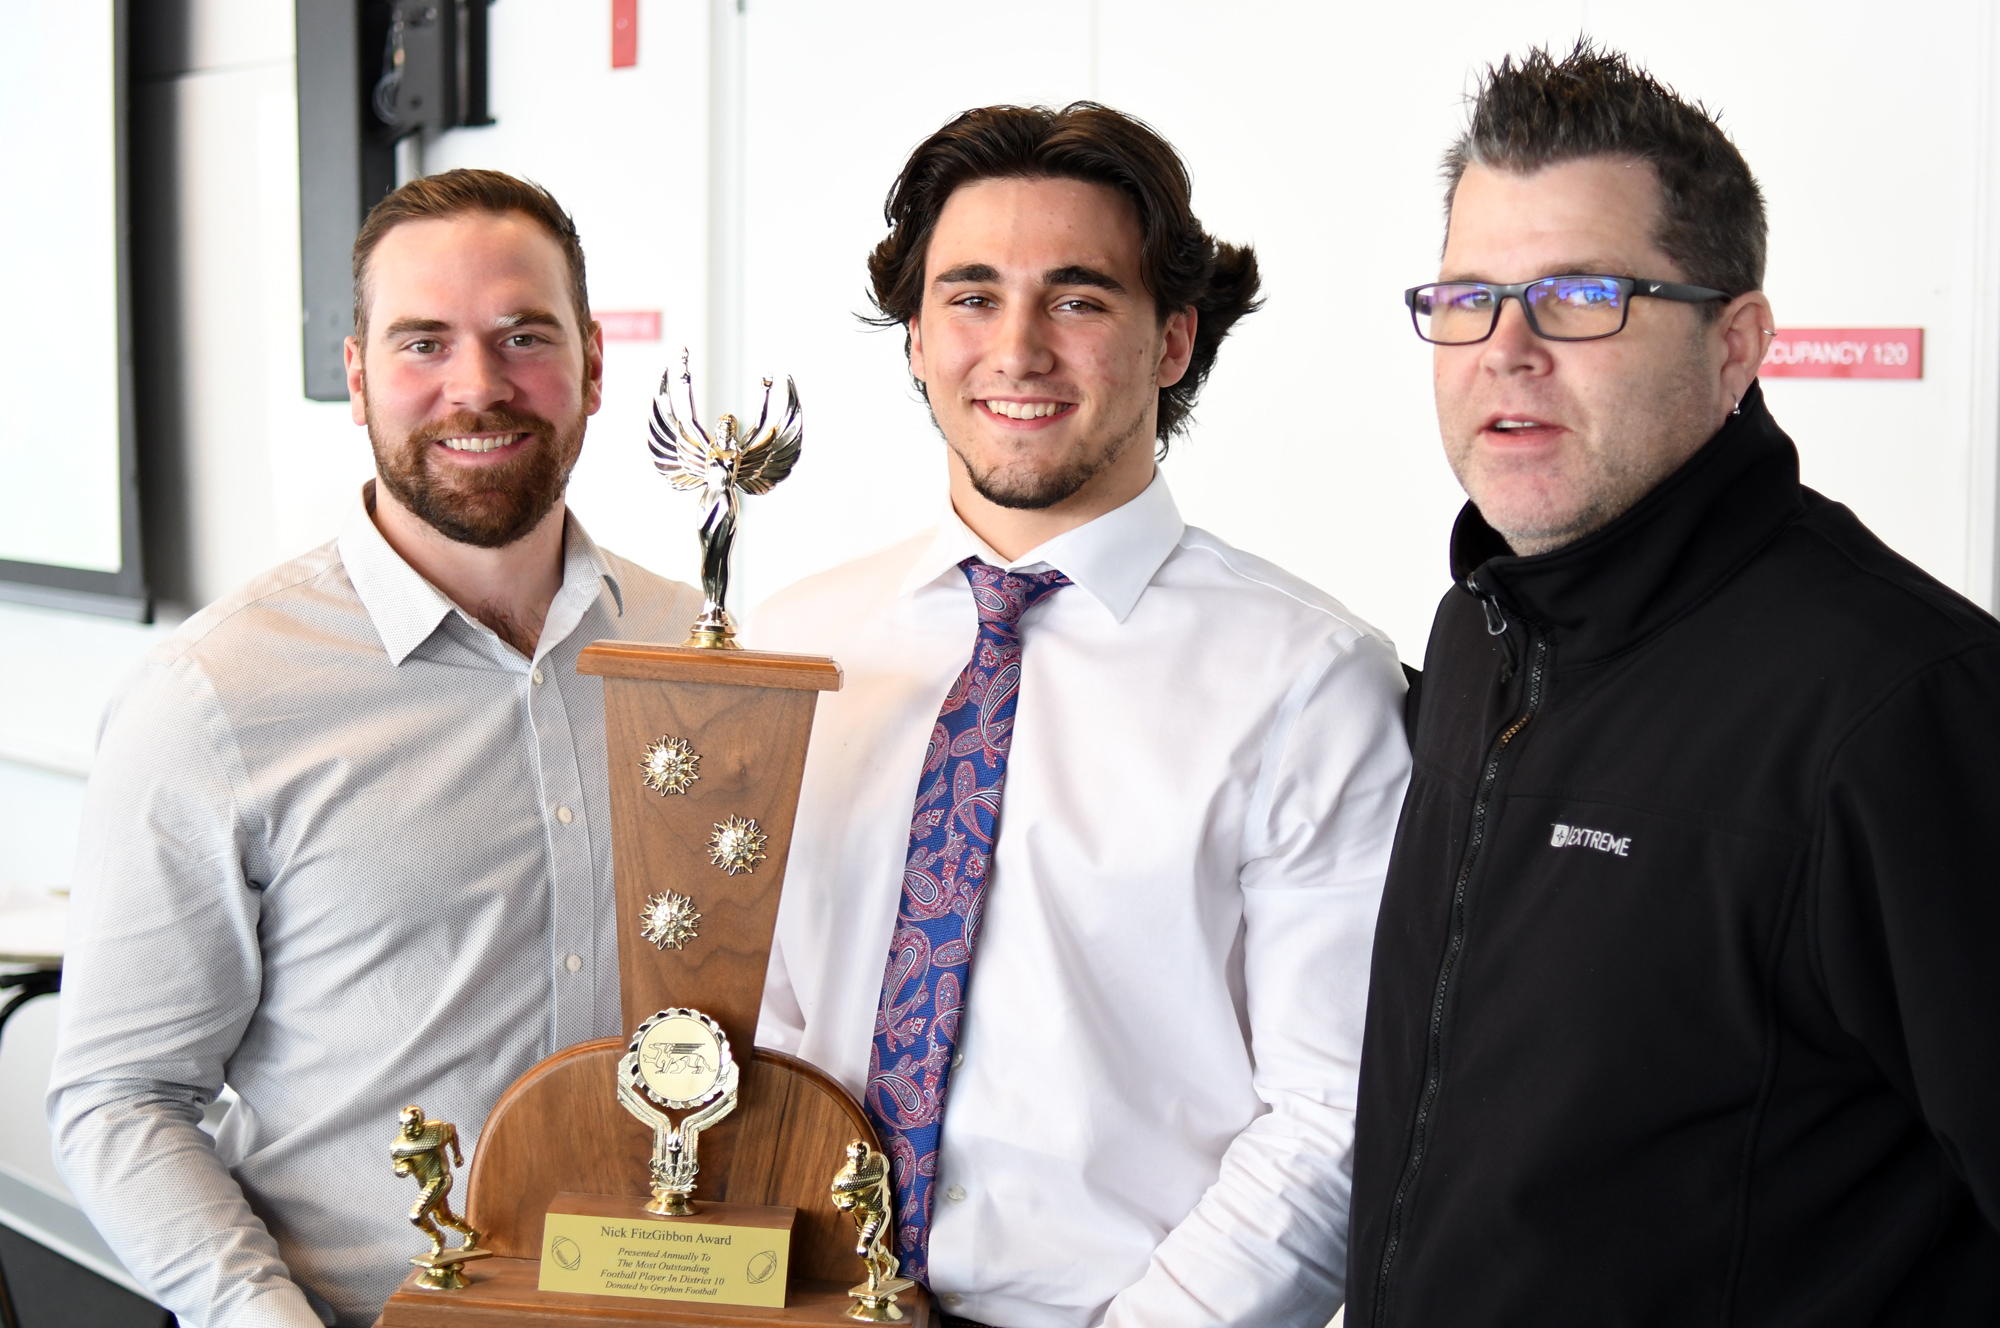 Former Gryphon great Nick FitzGibbon, left, with the winner of the Fitzy as most outstanding player in D10 football Tanner Nelmes, middle, and St. James coach Jeff Cummings.